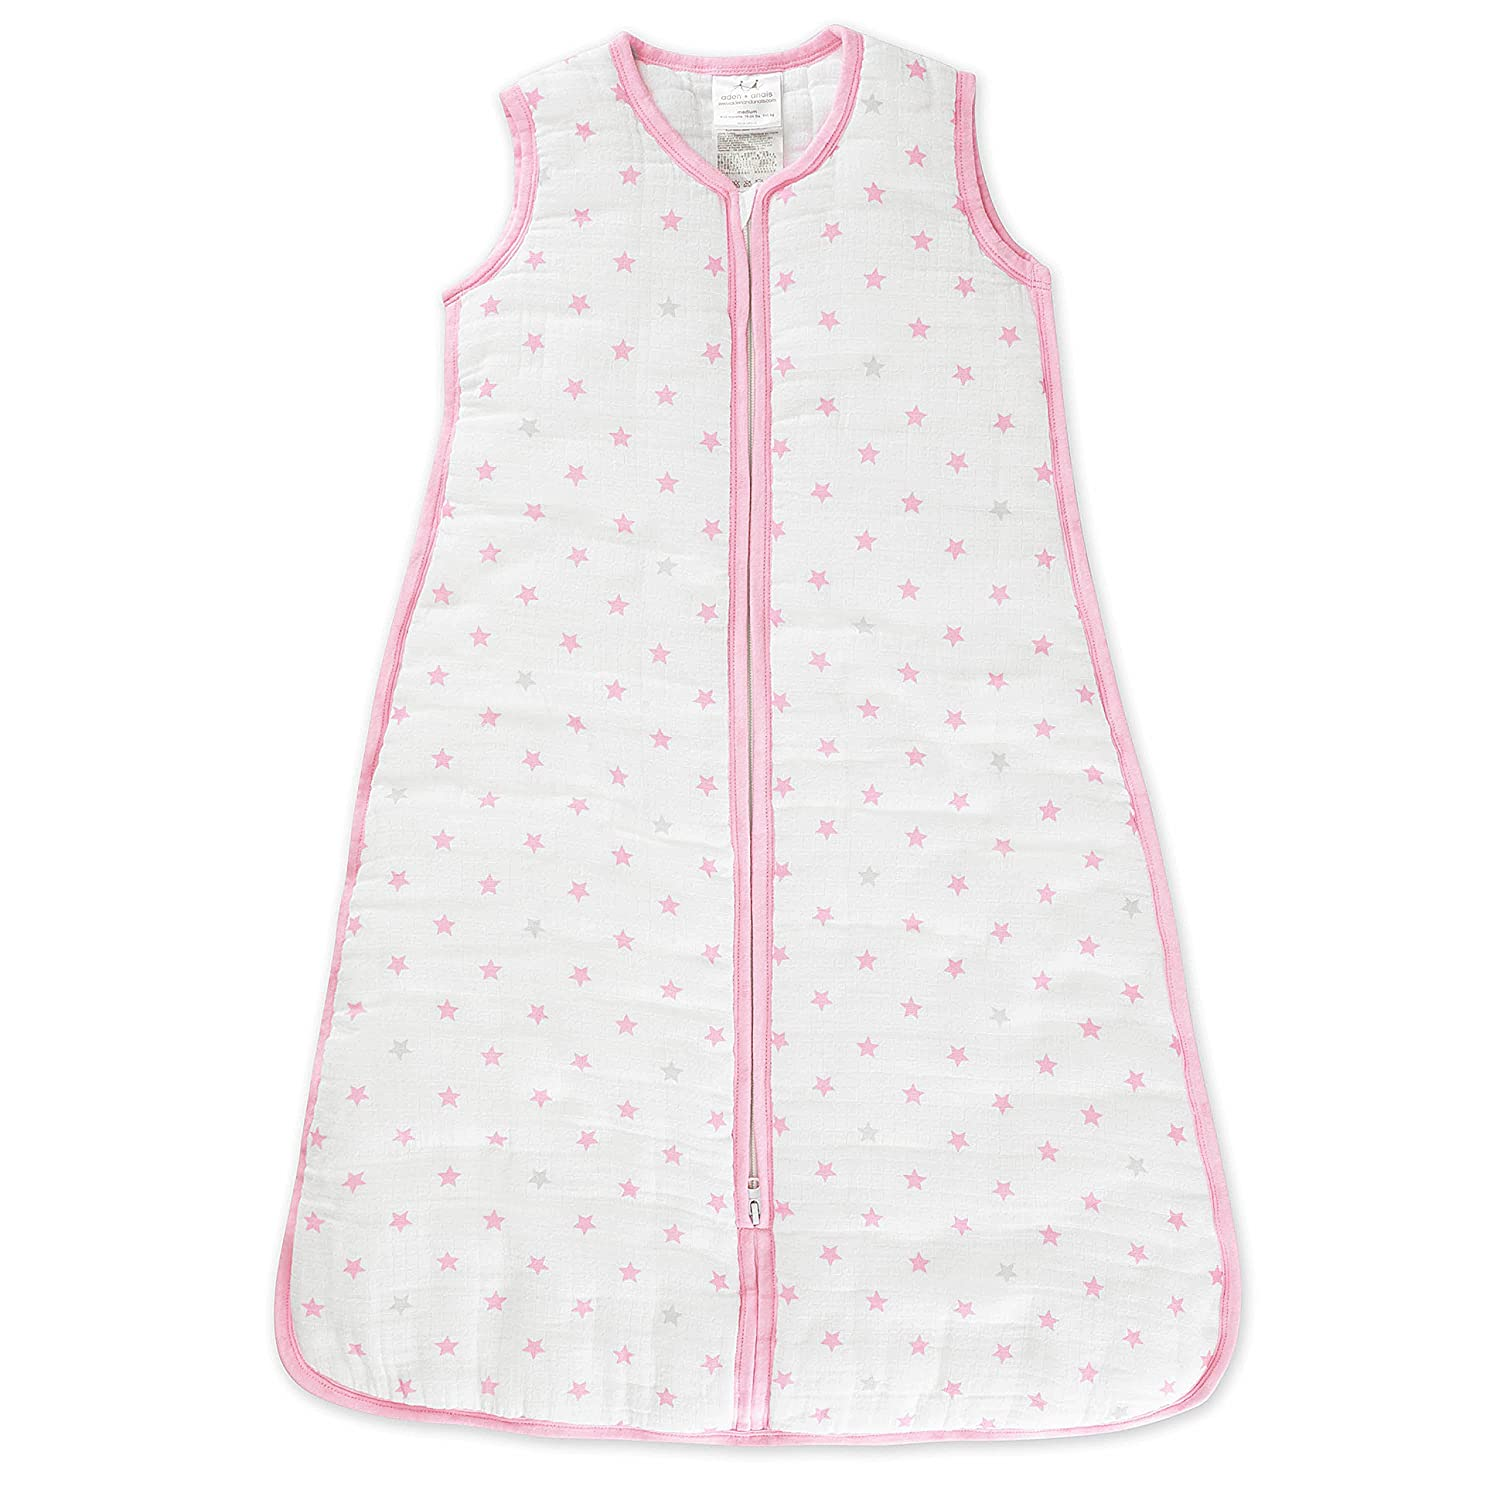 aden by aden + anais 2.5 TOG winter sleeping bag - darling (6-12 months) G475